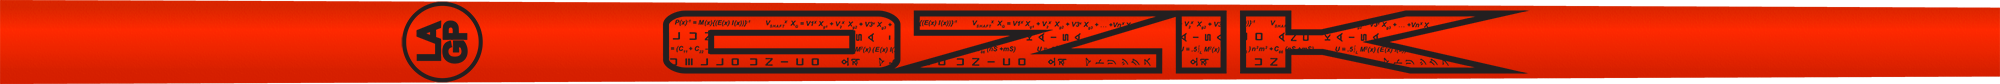 Ozik White Tie: Ferrari Red Black Matte - Wood 50 A